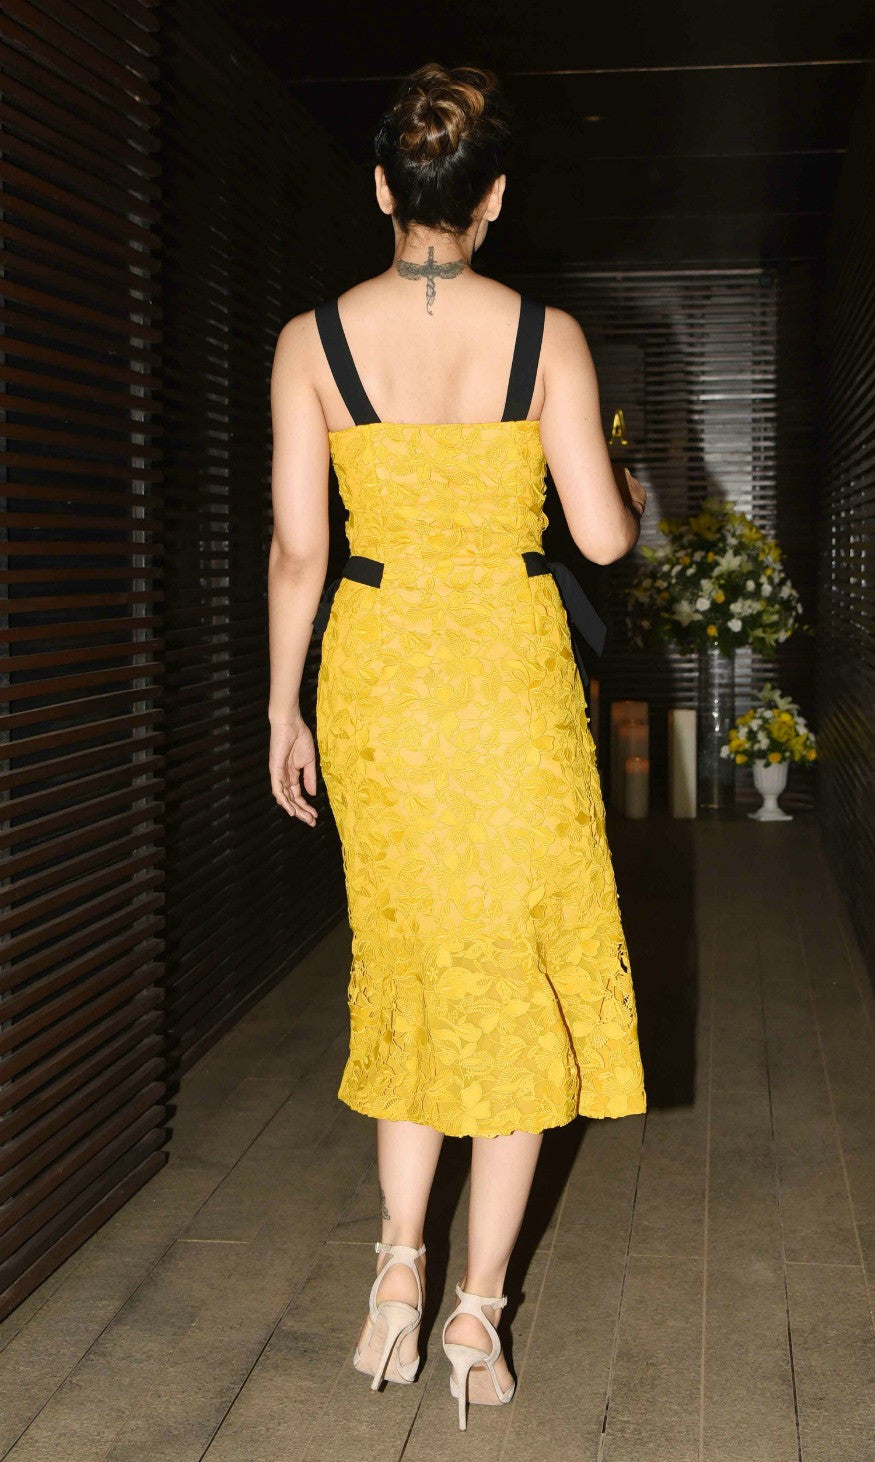 Kangana Ranaut In Sachin & Babi's Yellow Lace Dress